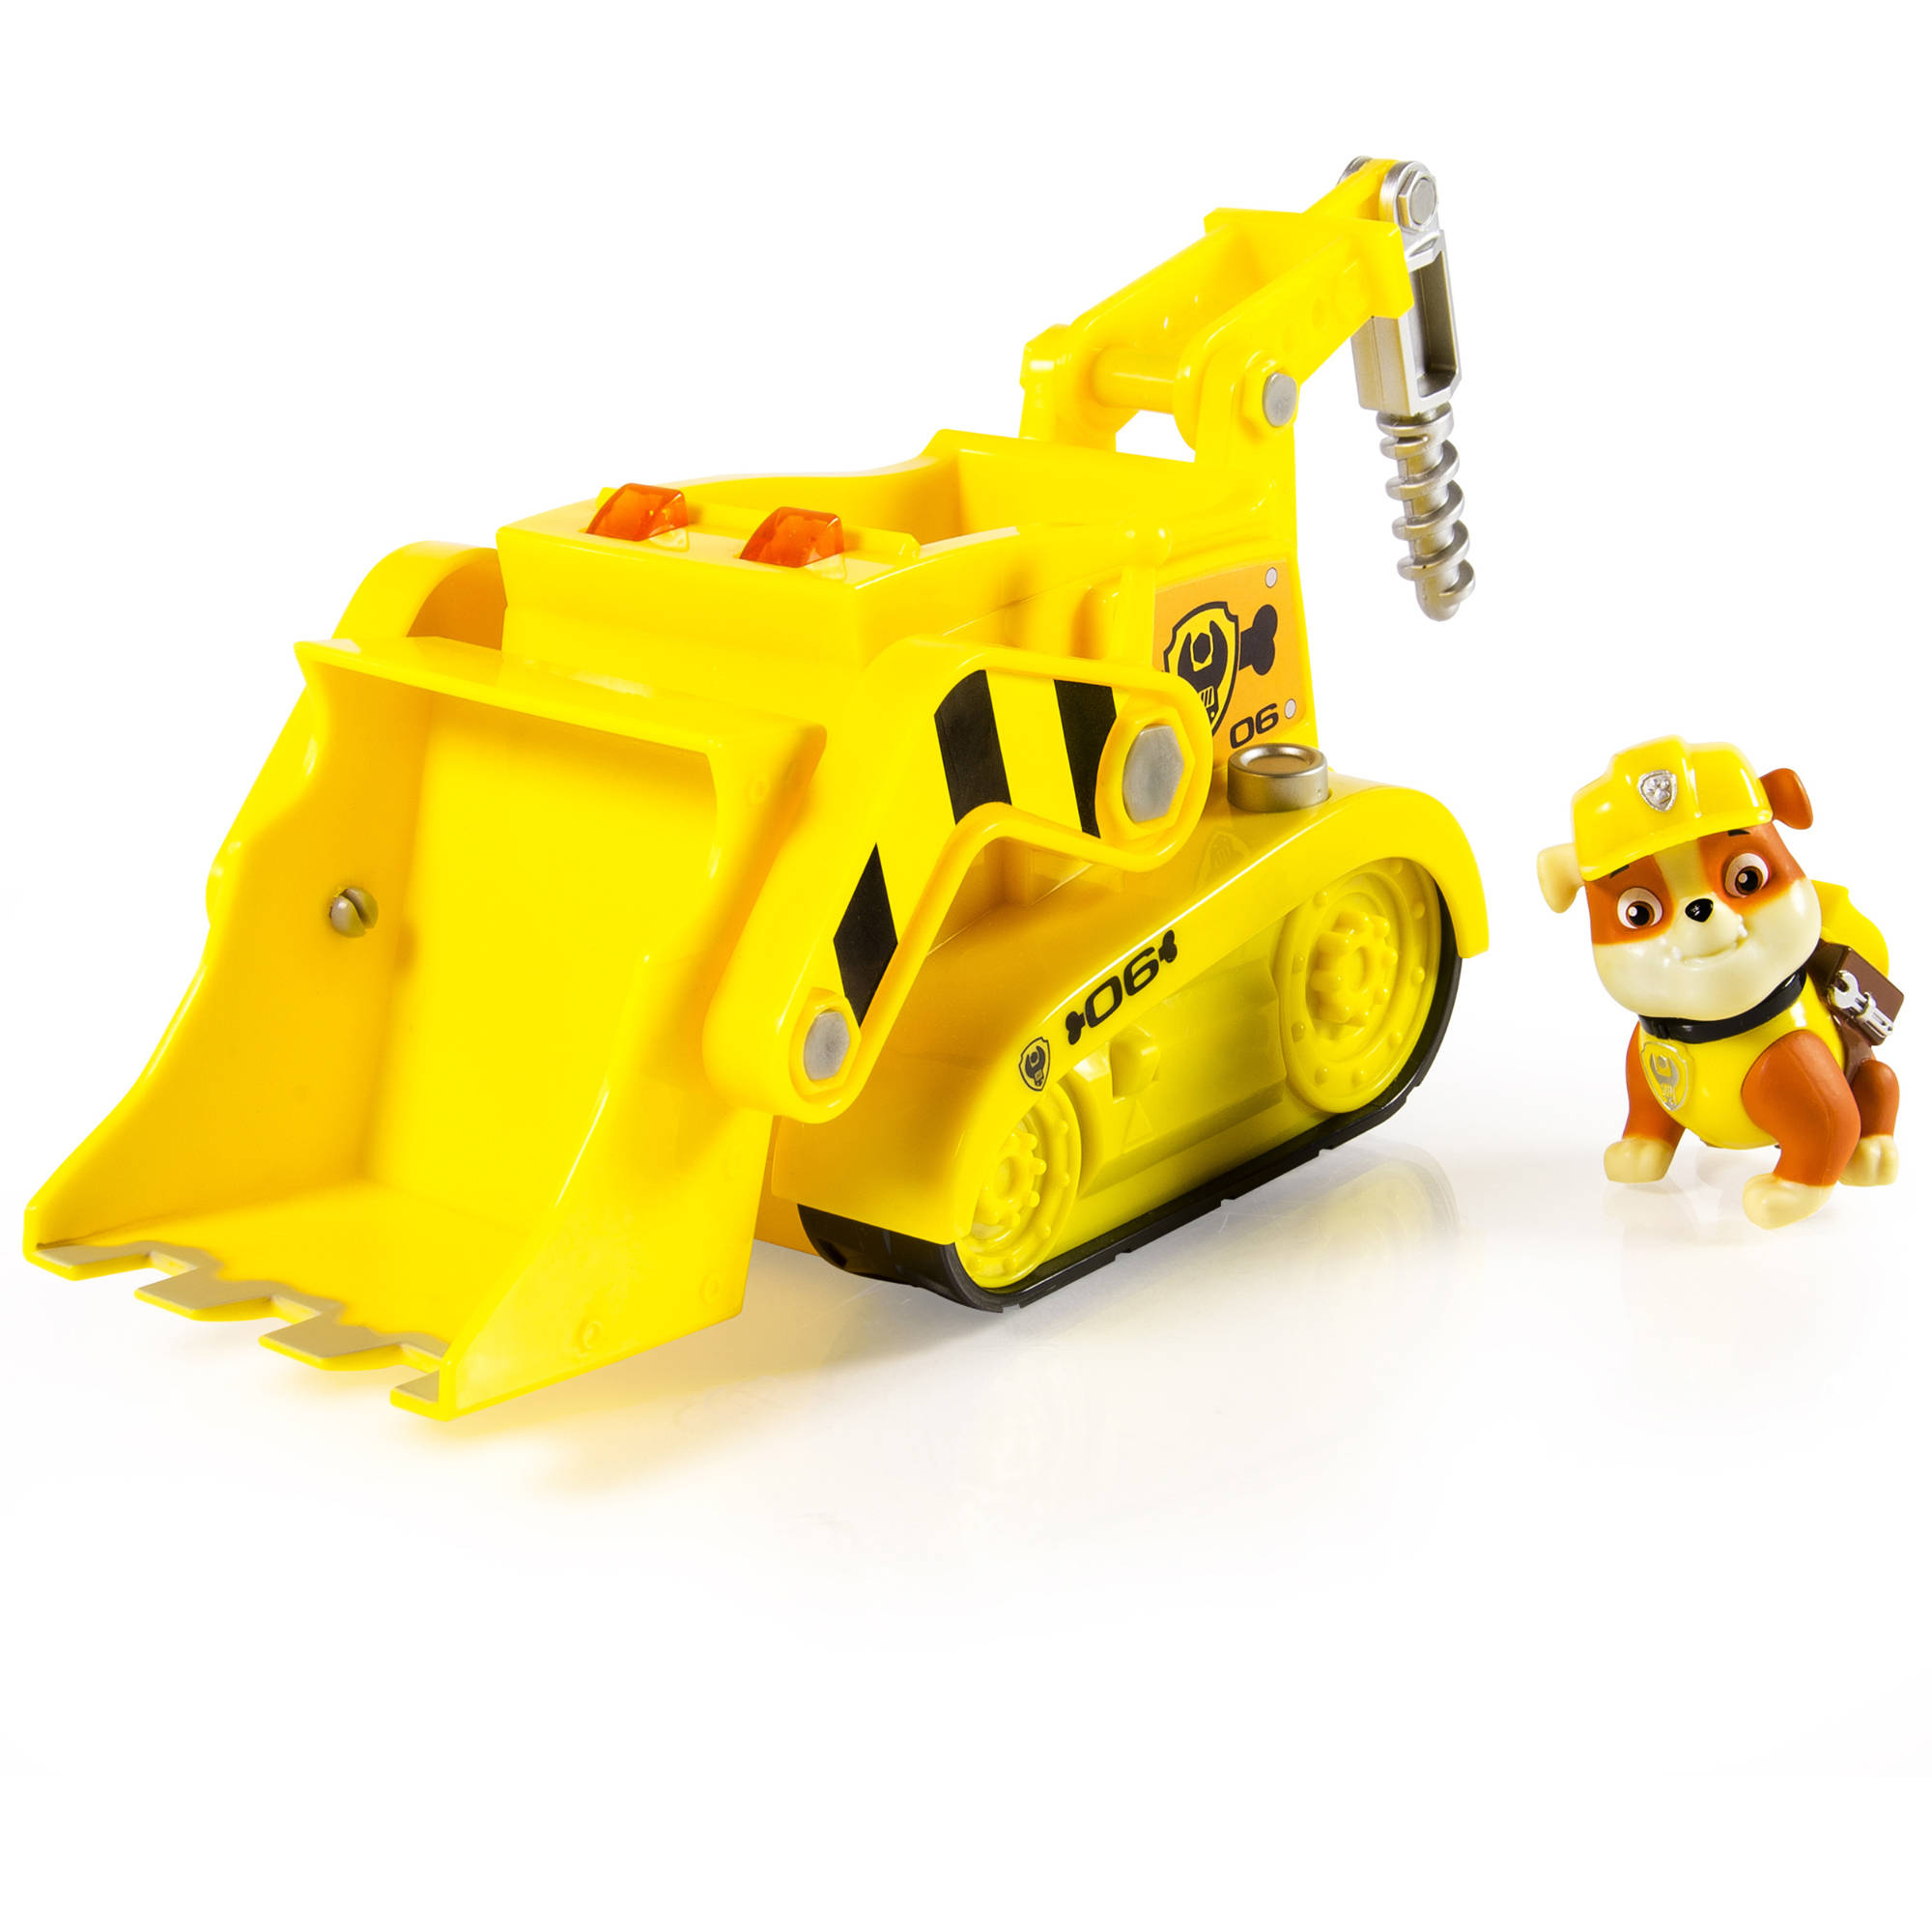 <div>Paw Patrol Rubble's Lights and Sounds Construction Truck Vehicle with figure</div> <p> </p>